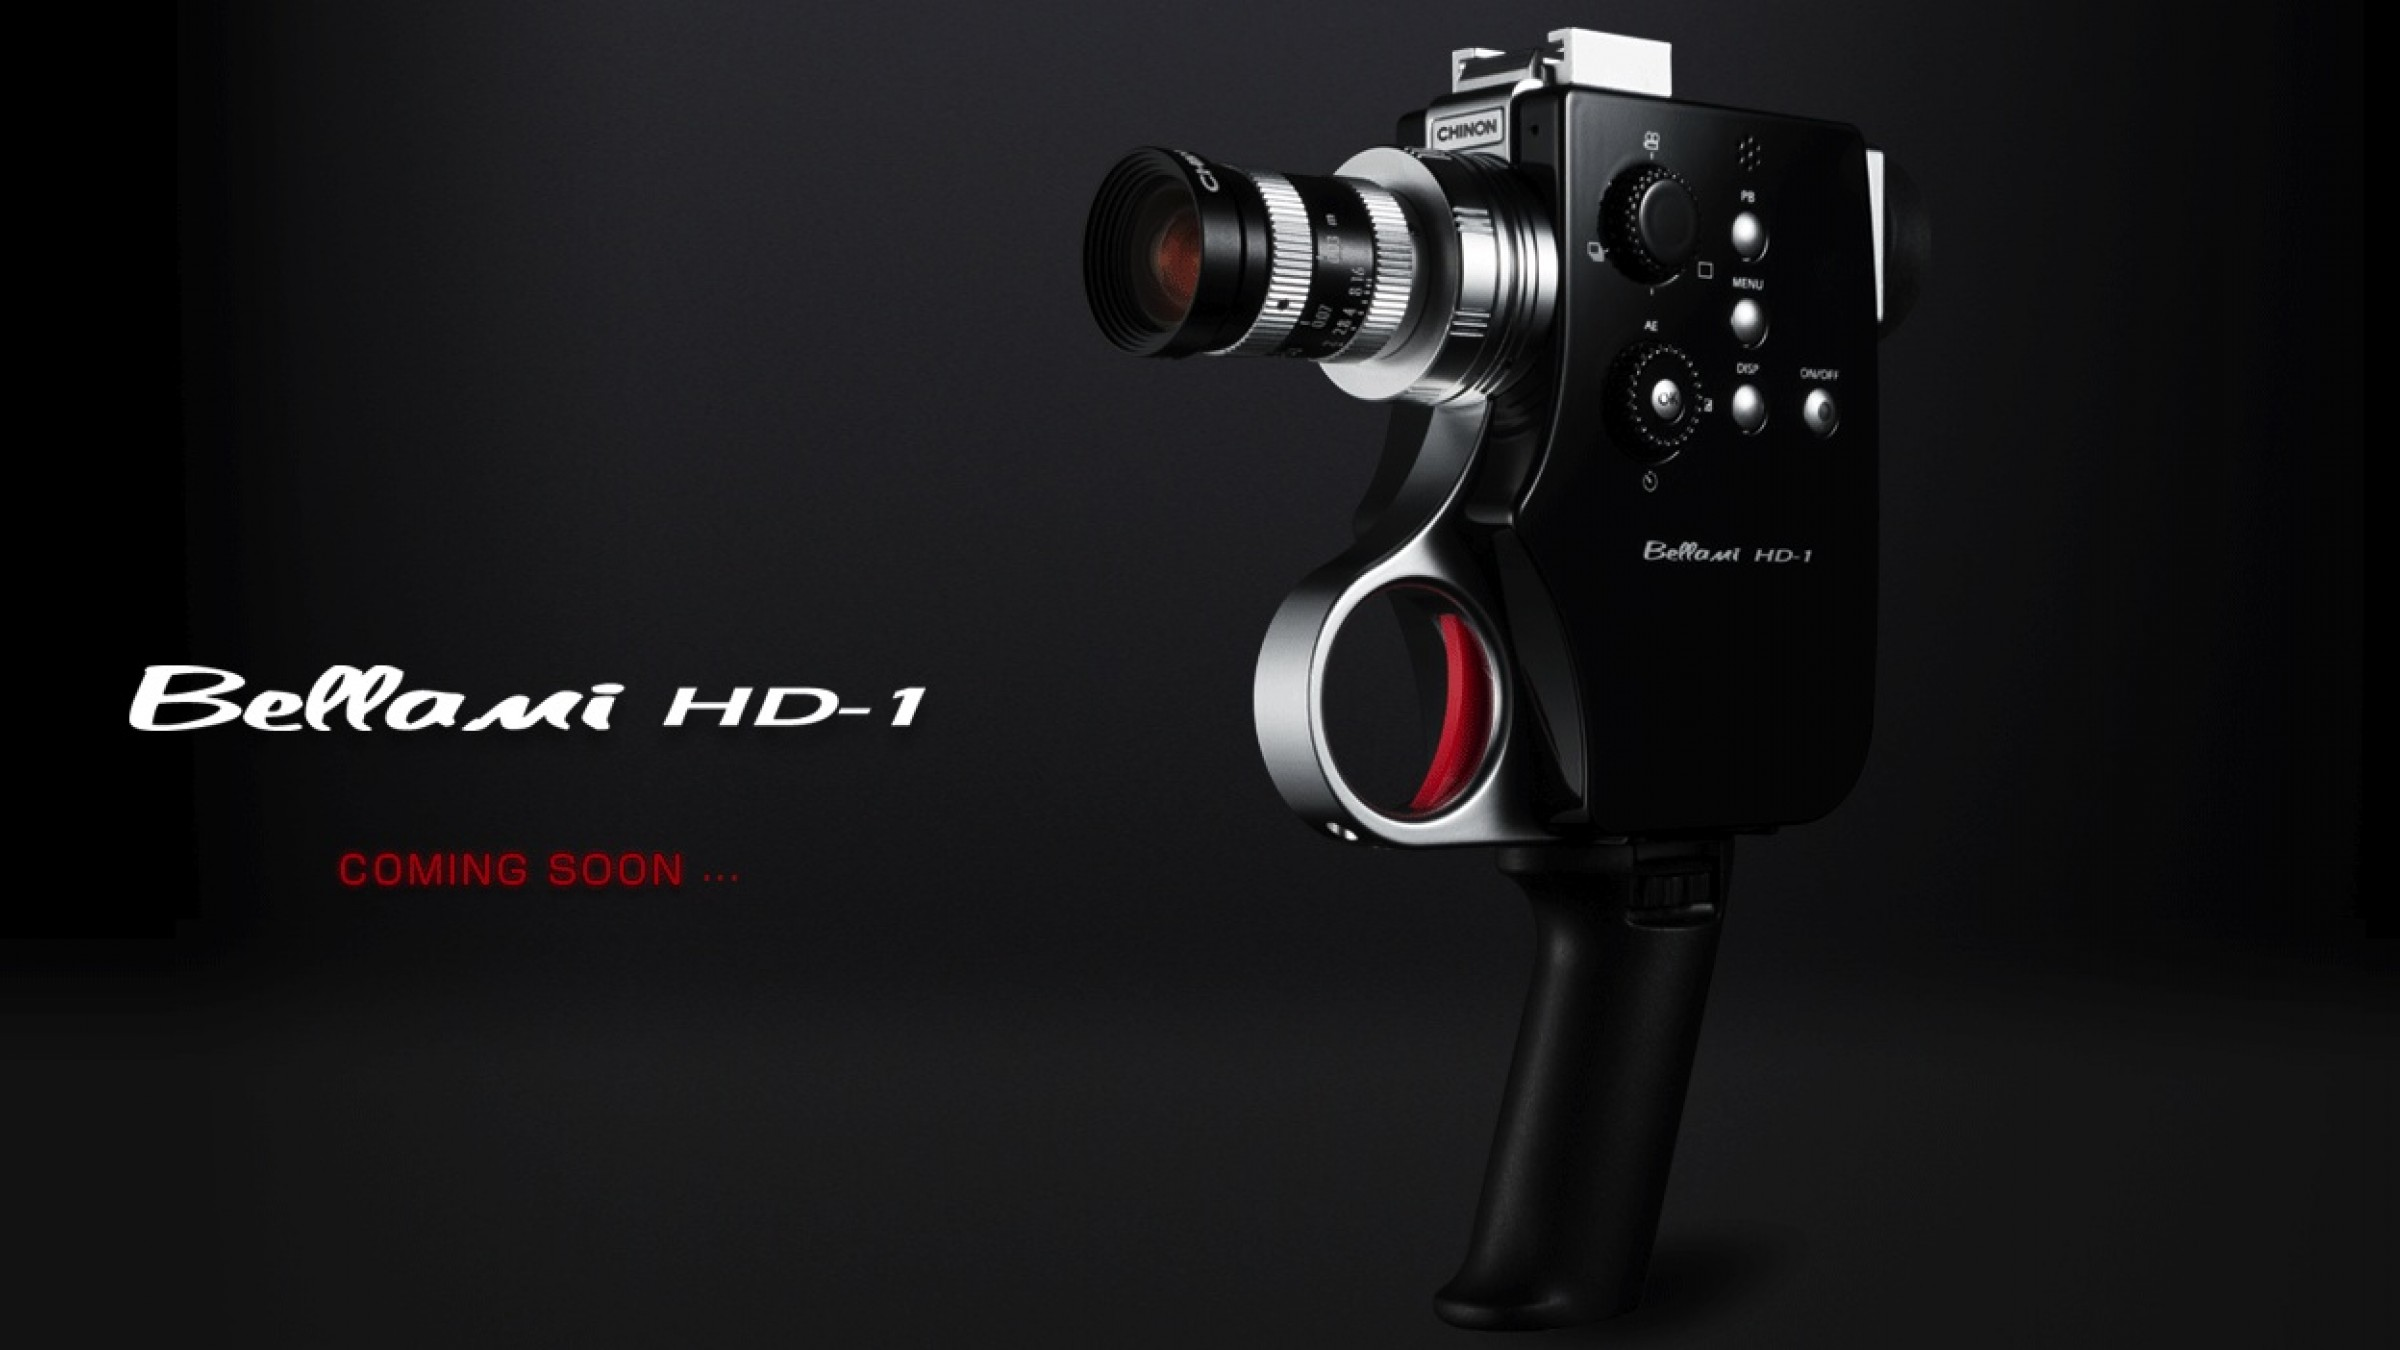 New Super 8mm-Style Digital Camera with Interchangeable Lenses is Coming from Japan